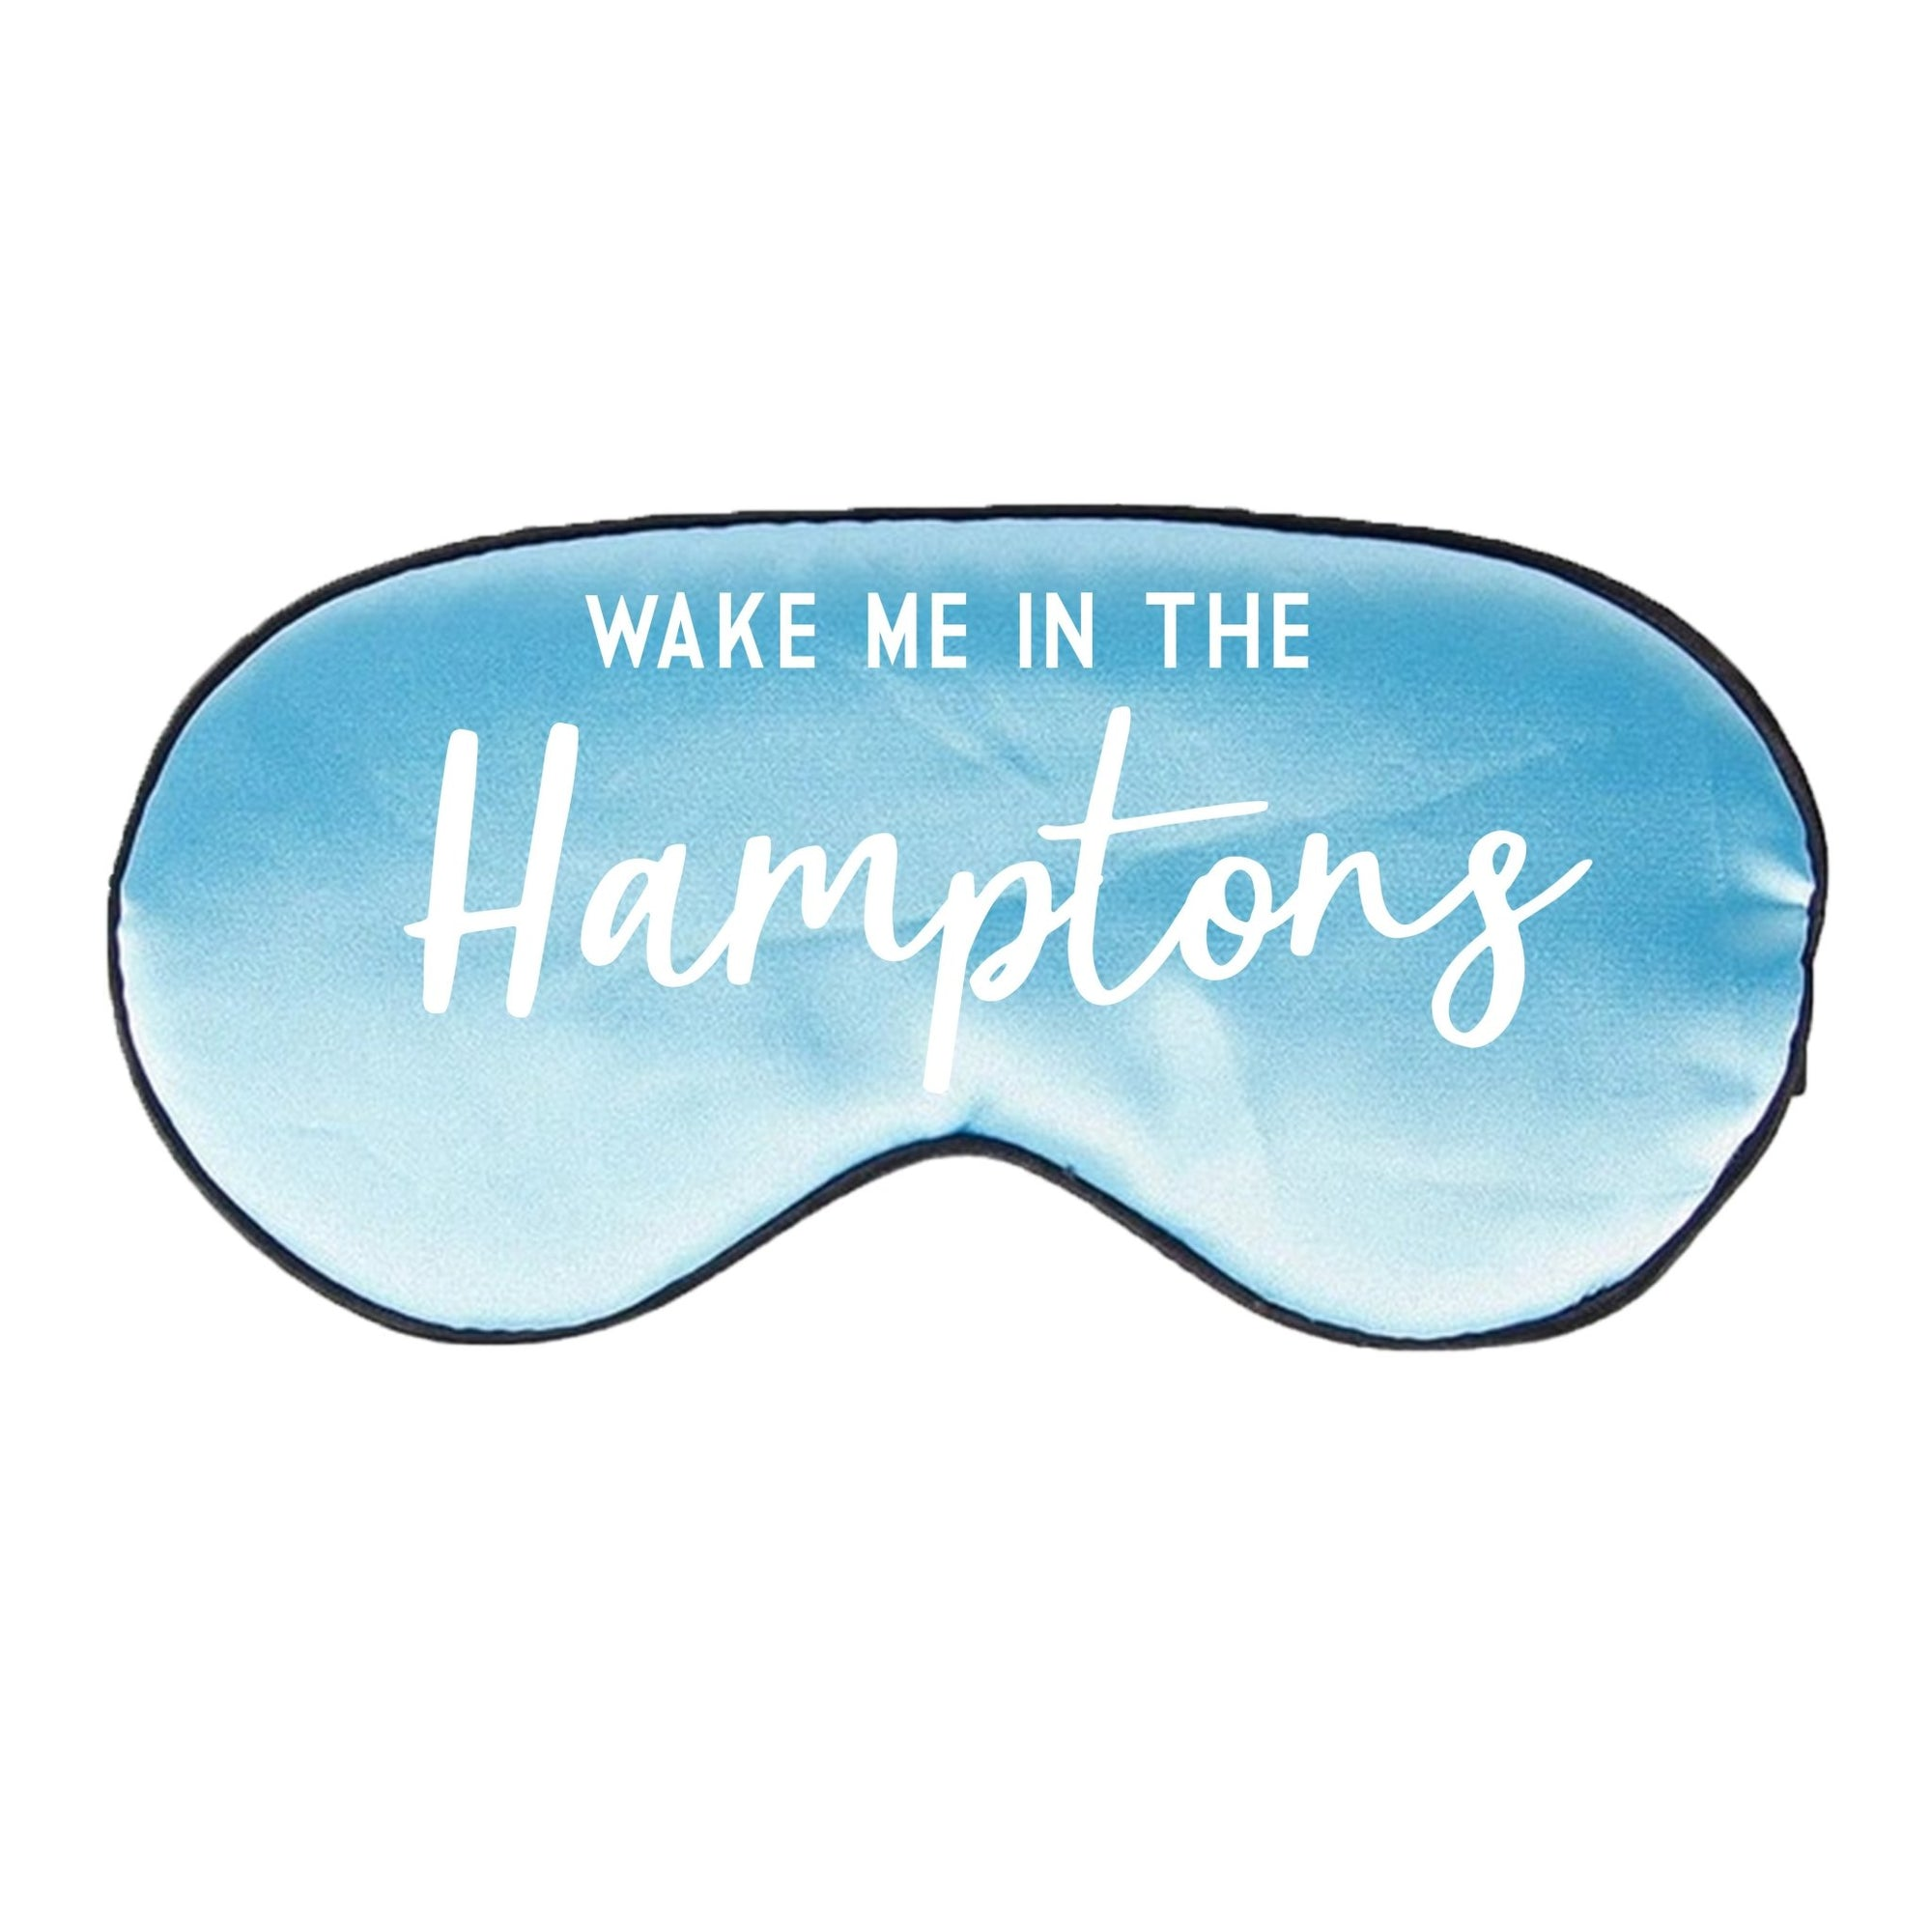 Wake Me in the Hamptons Sleep Mask - Sprinkled With Pink #bachelorette #custom #gifts